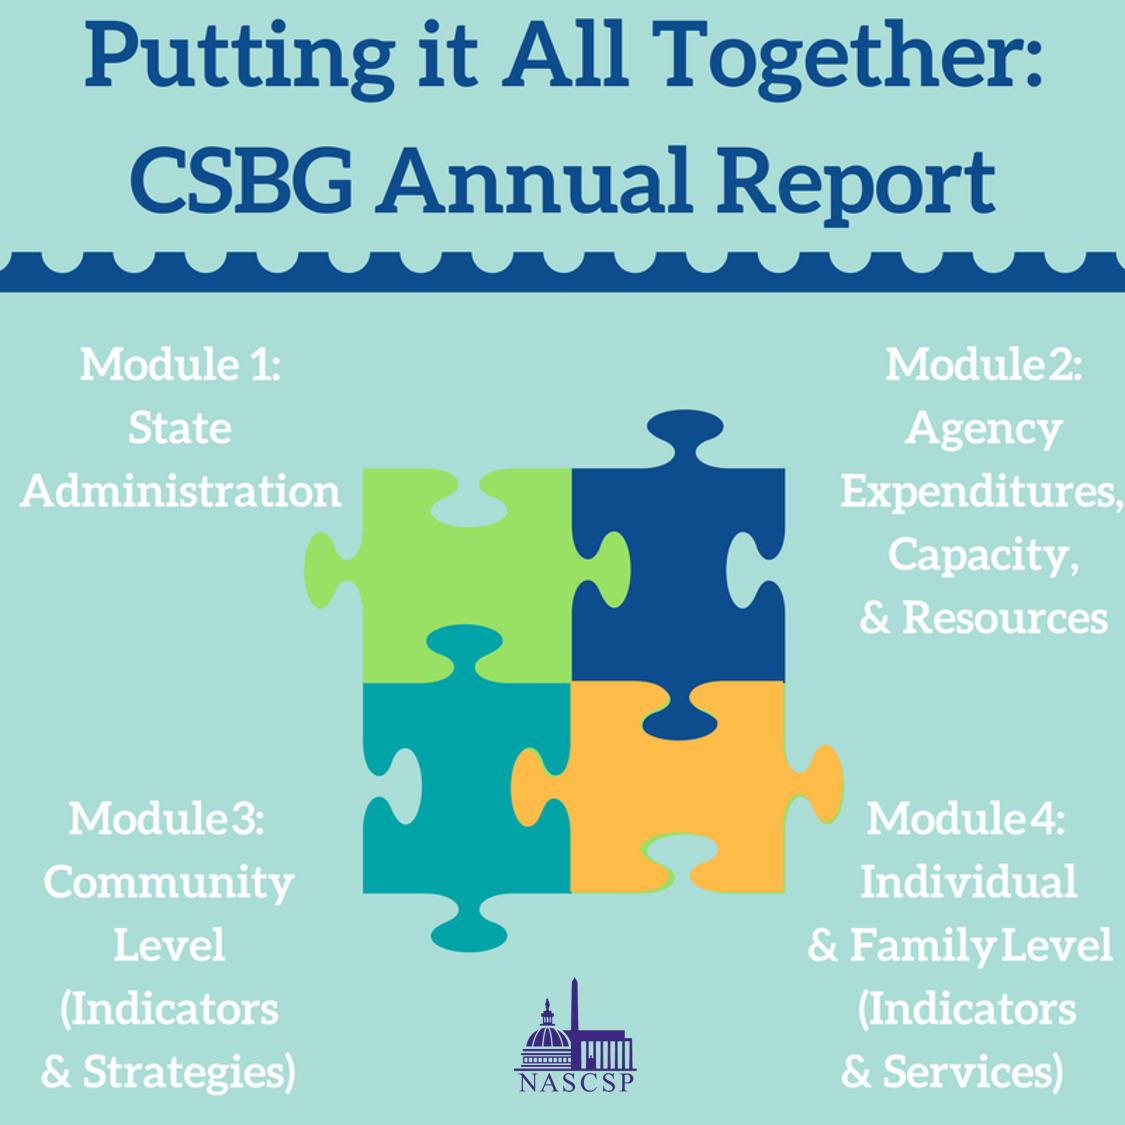 CSBG Annual Report Puzzle_Branded